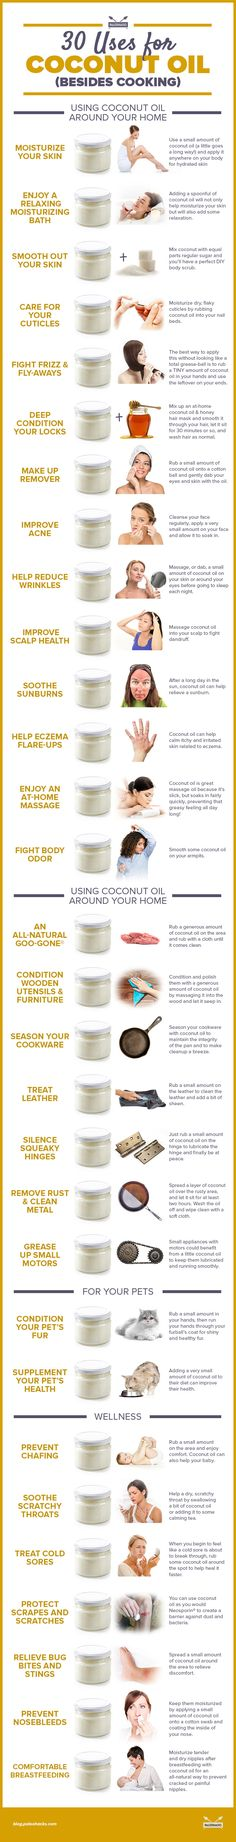 "What can't coconut oil do?! Thirty uses of coconut oil besides cooking. Coconut oil is almost like the miracle oil with all that it can do, and I???m sure there are many more uses out there. <a href=""http://paleo.co/30UsesCO"" rel=""nofollow"" target=""_blank"">paleo.co/30UsesCO</a>"